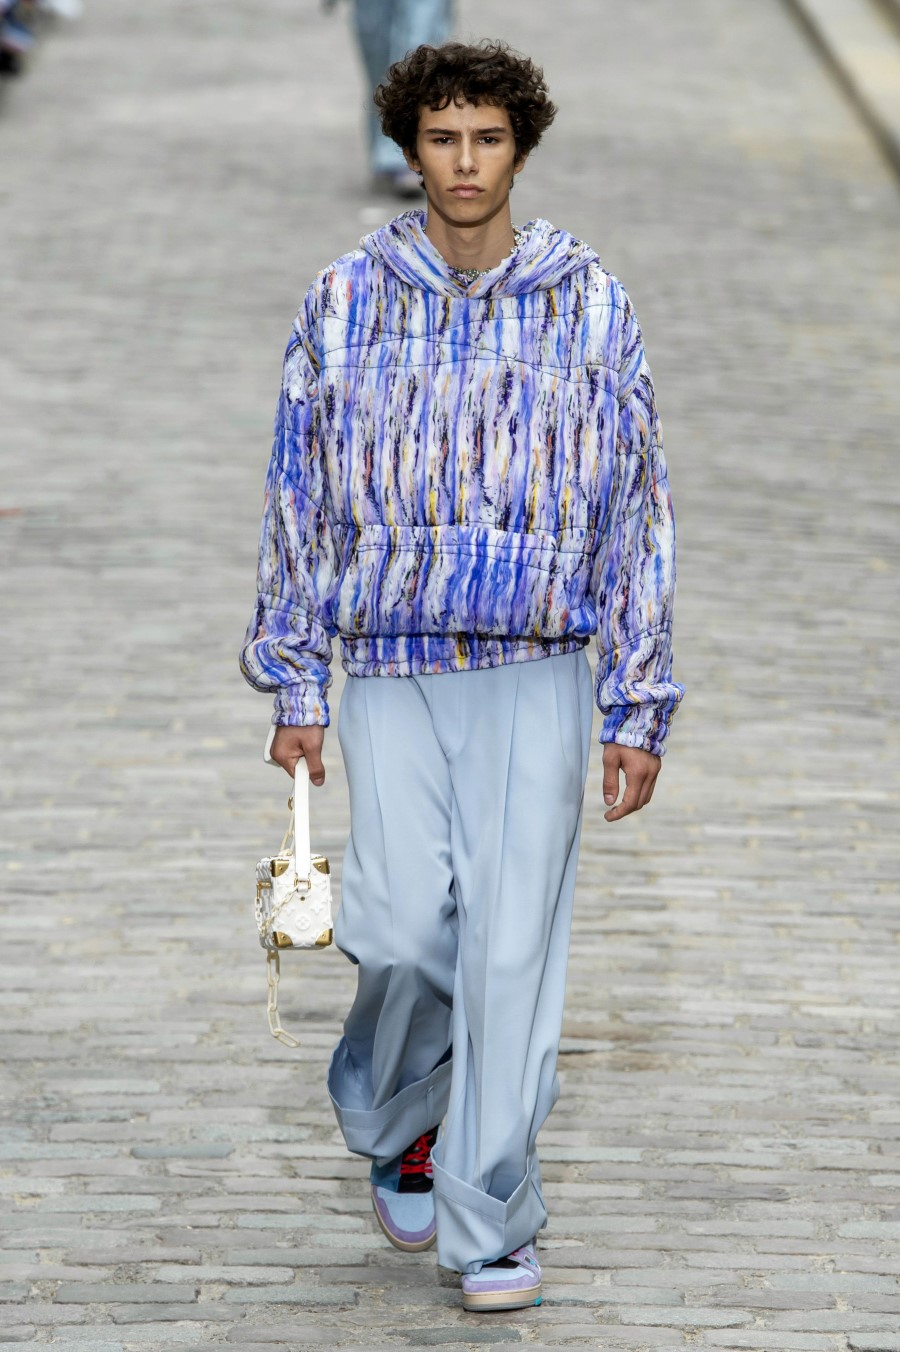 Louis Vuitton - Printemps-Été 2020 - Paris Fashion Week